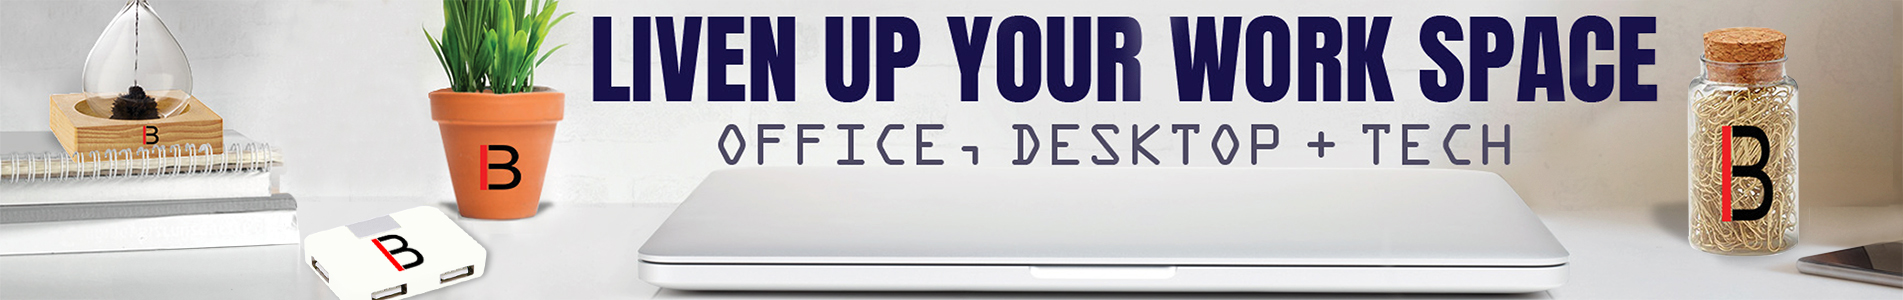 Office, Desktop & Tech